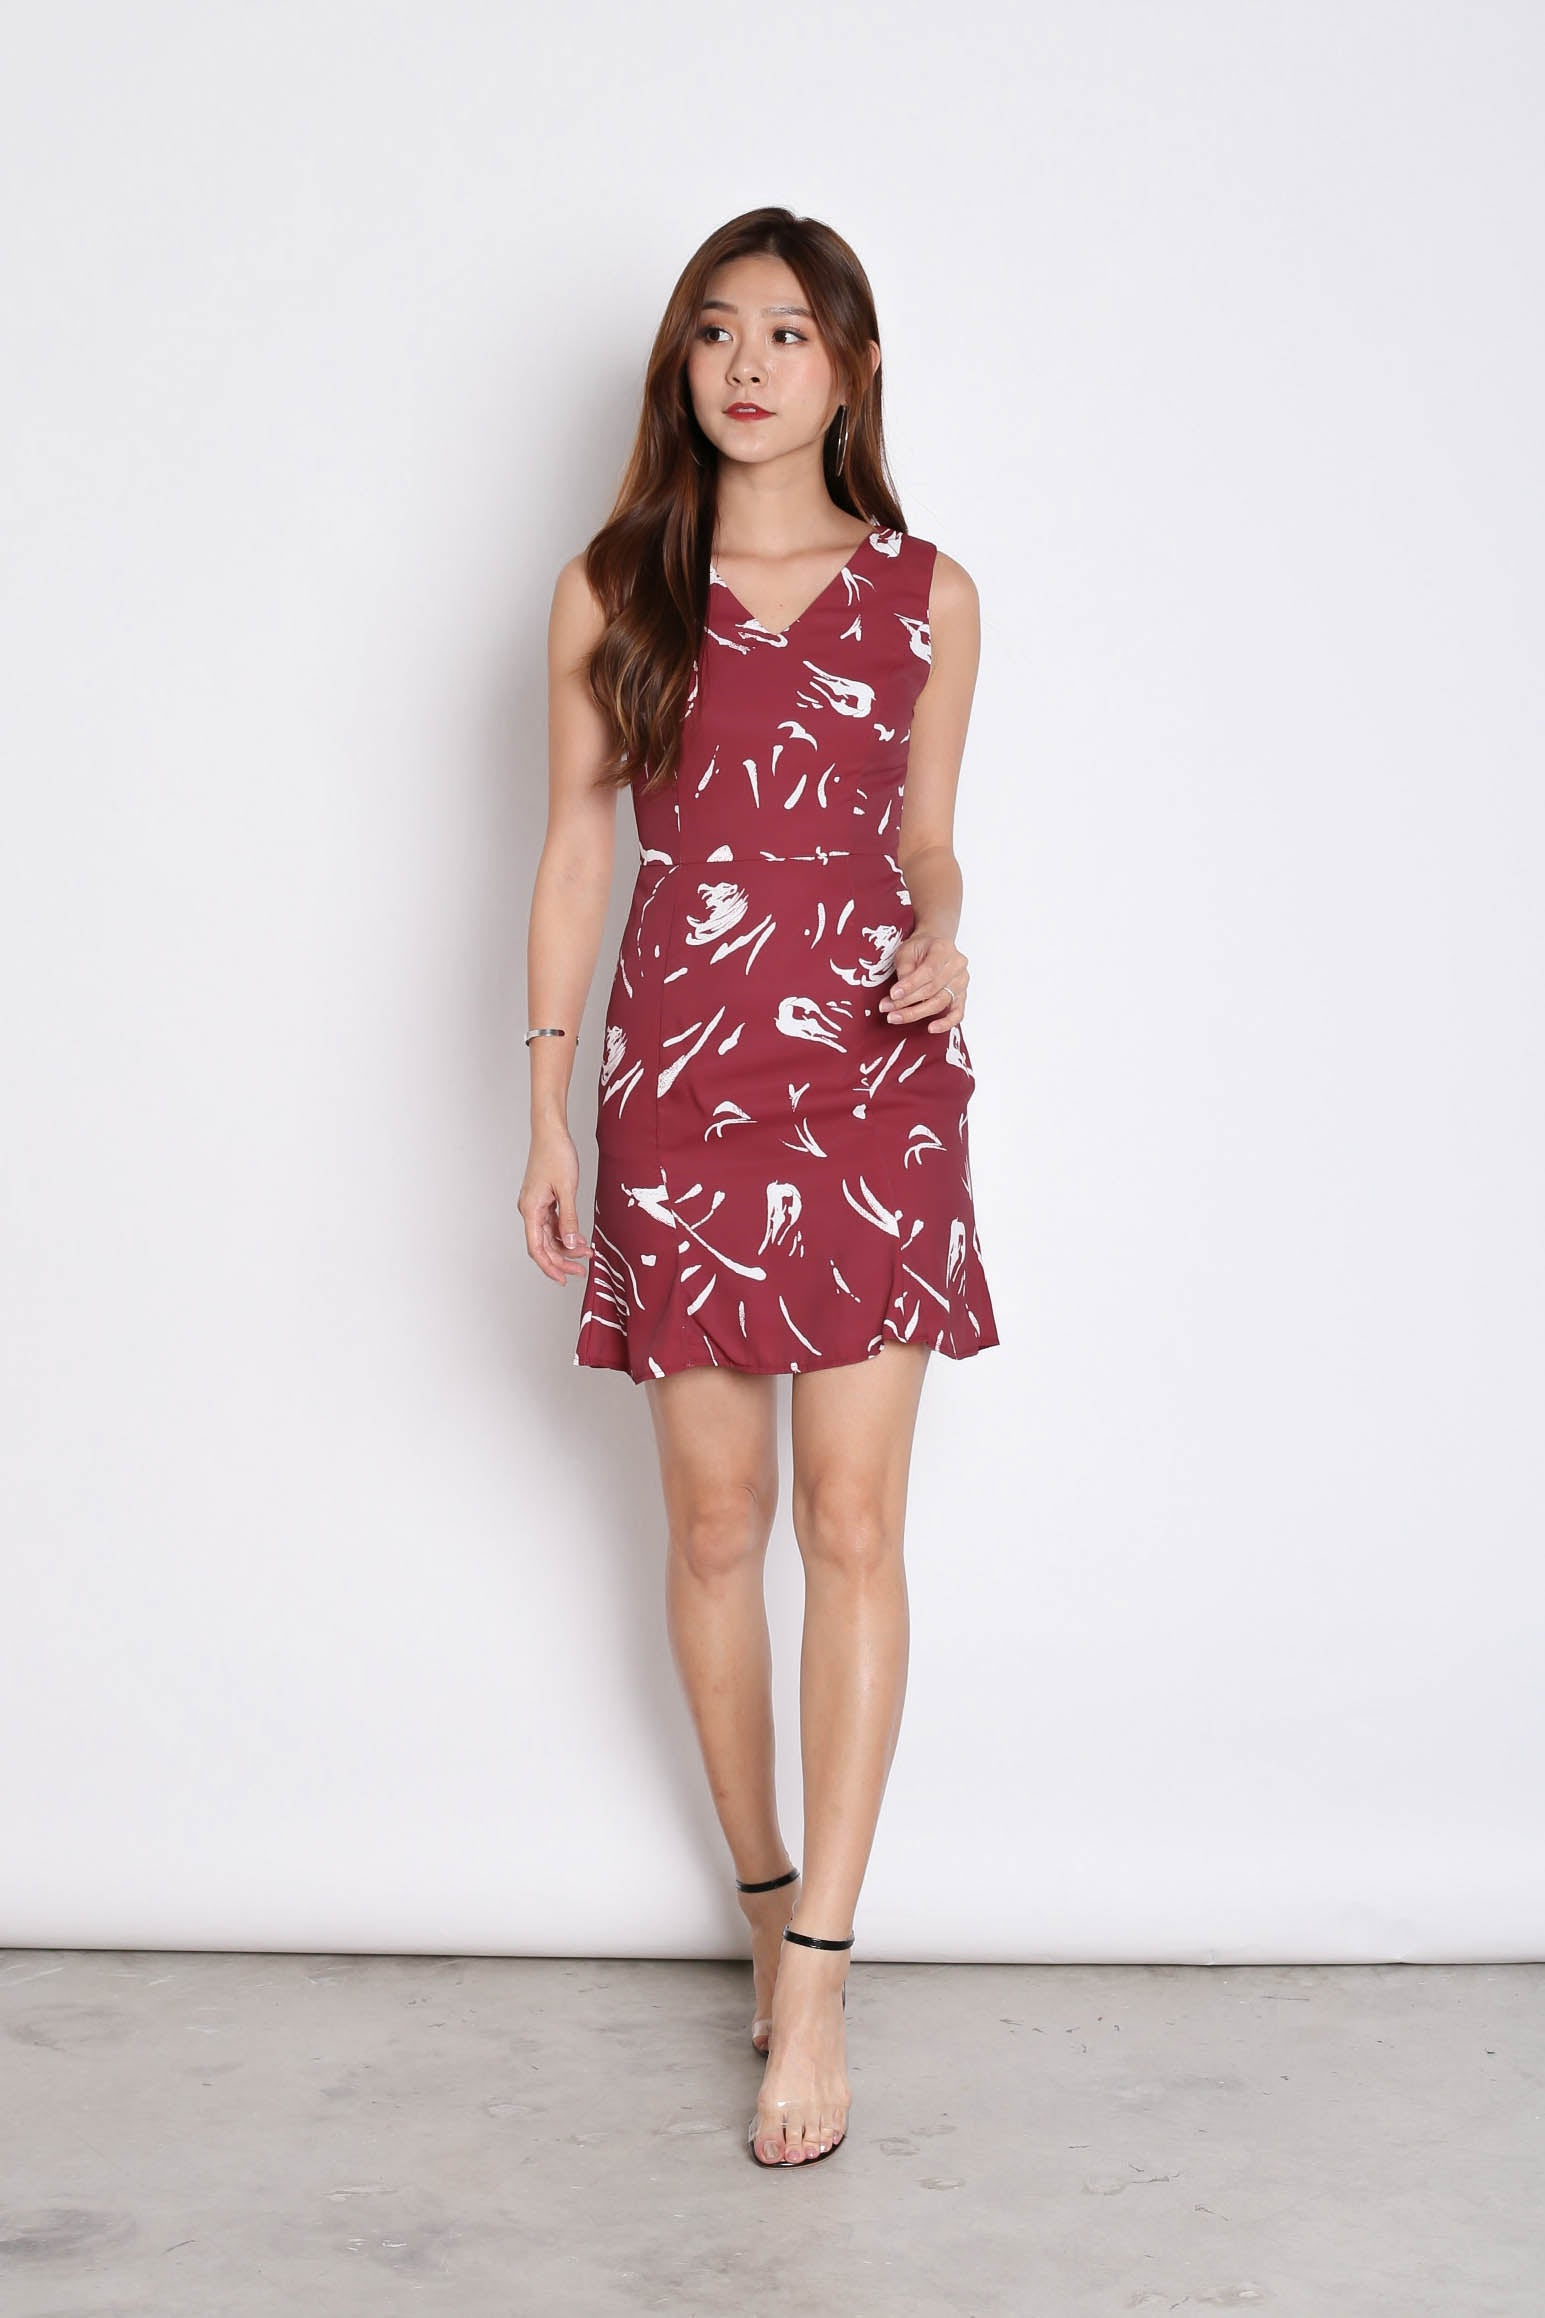 (PREMIUM) BRIELL ABSTRACT DRESS IN BURGUNDY